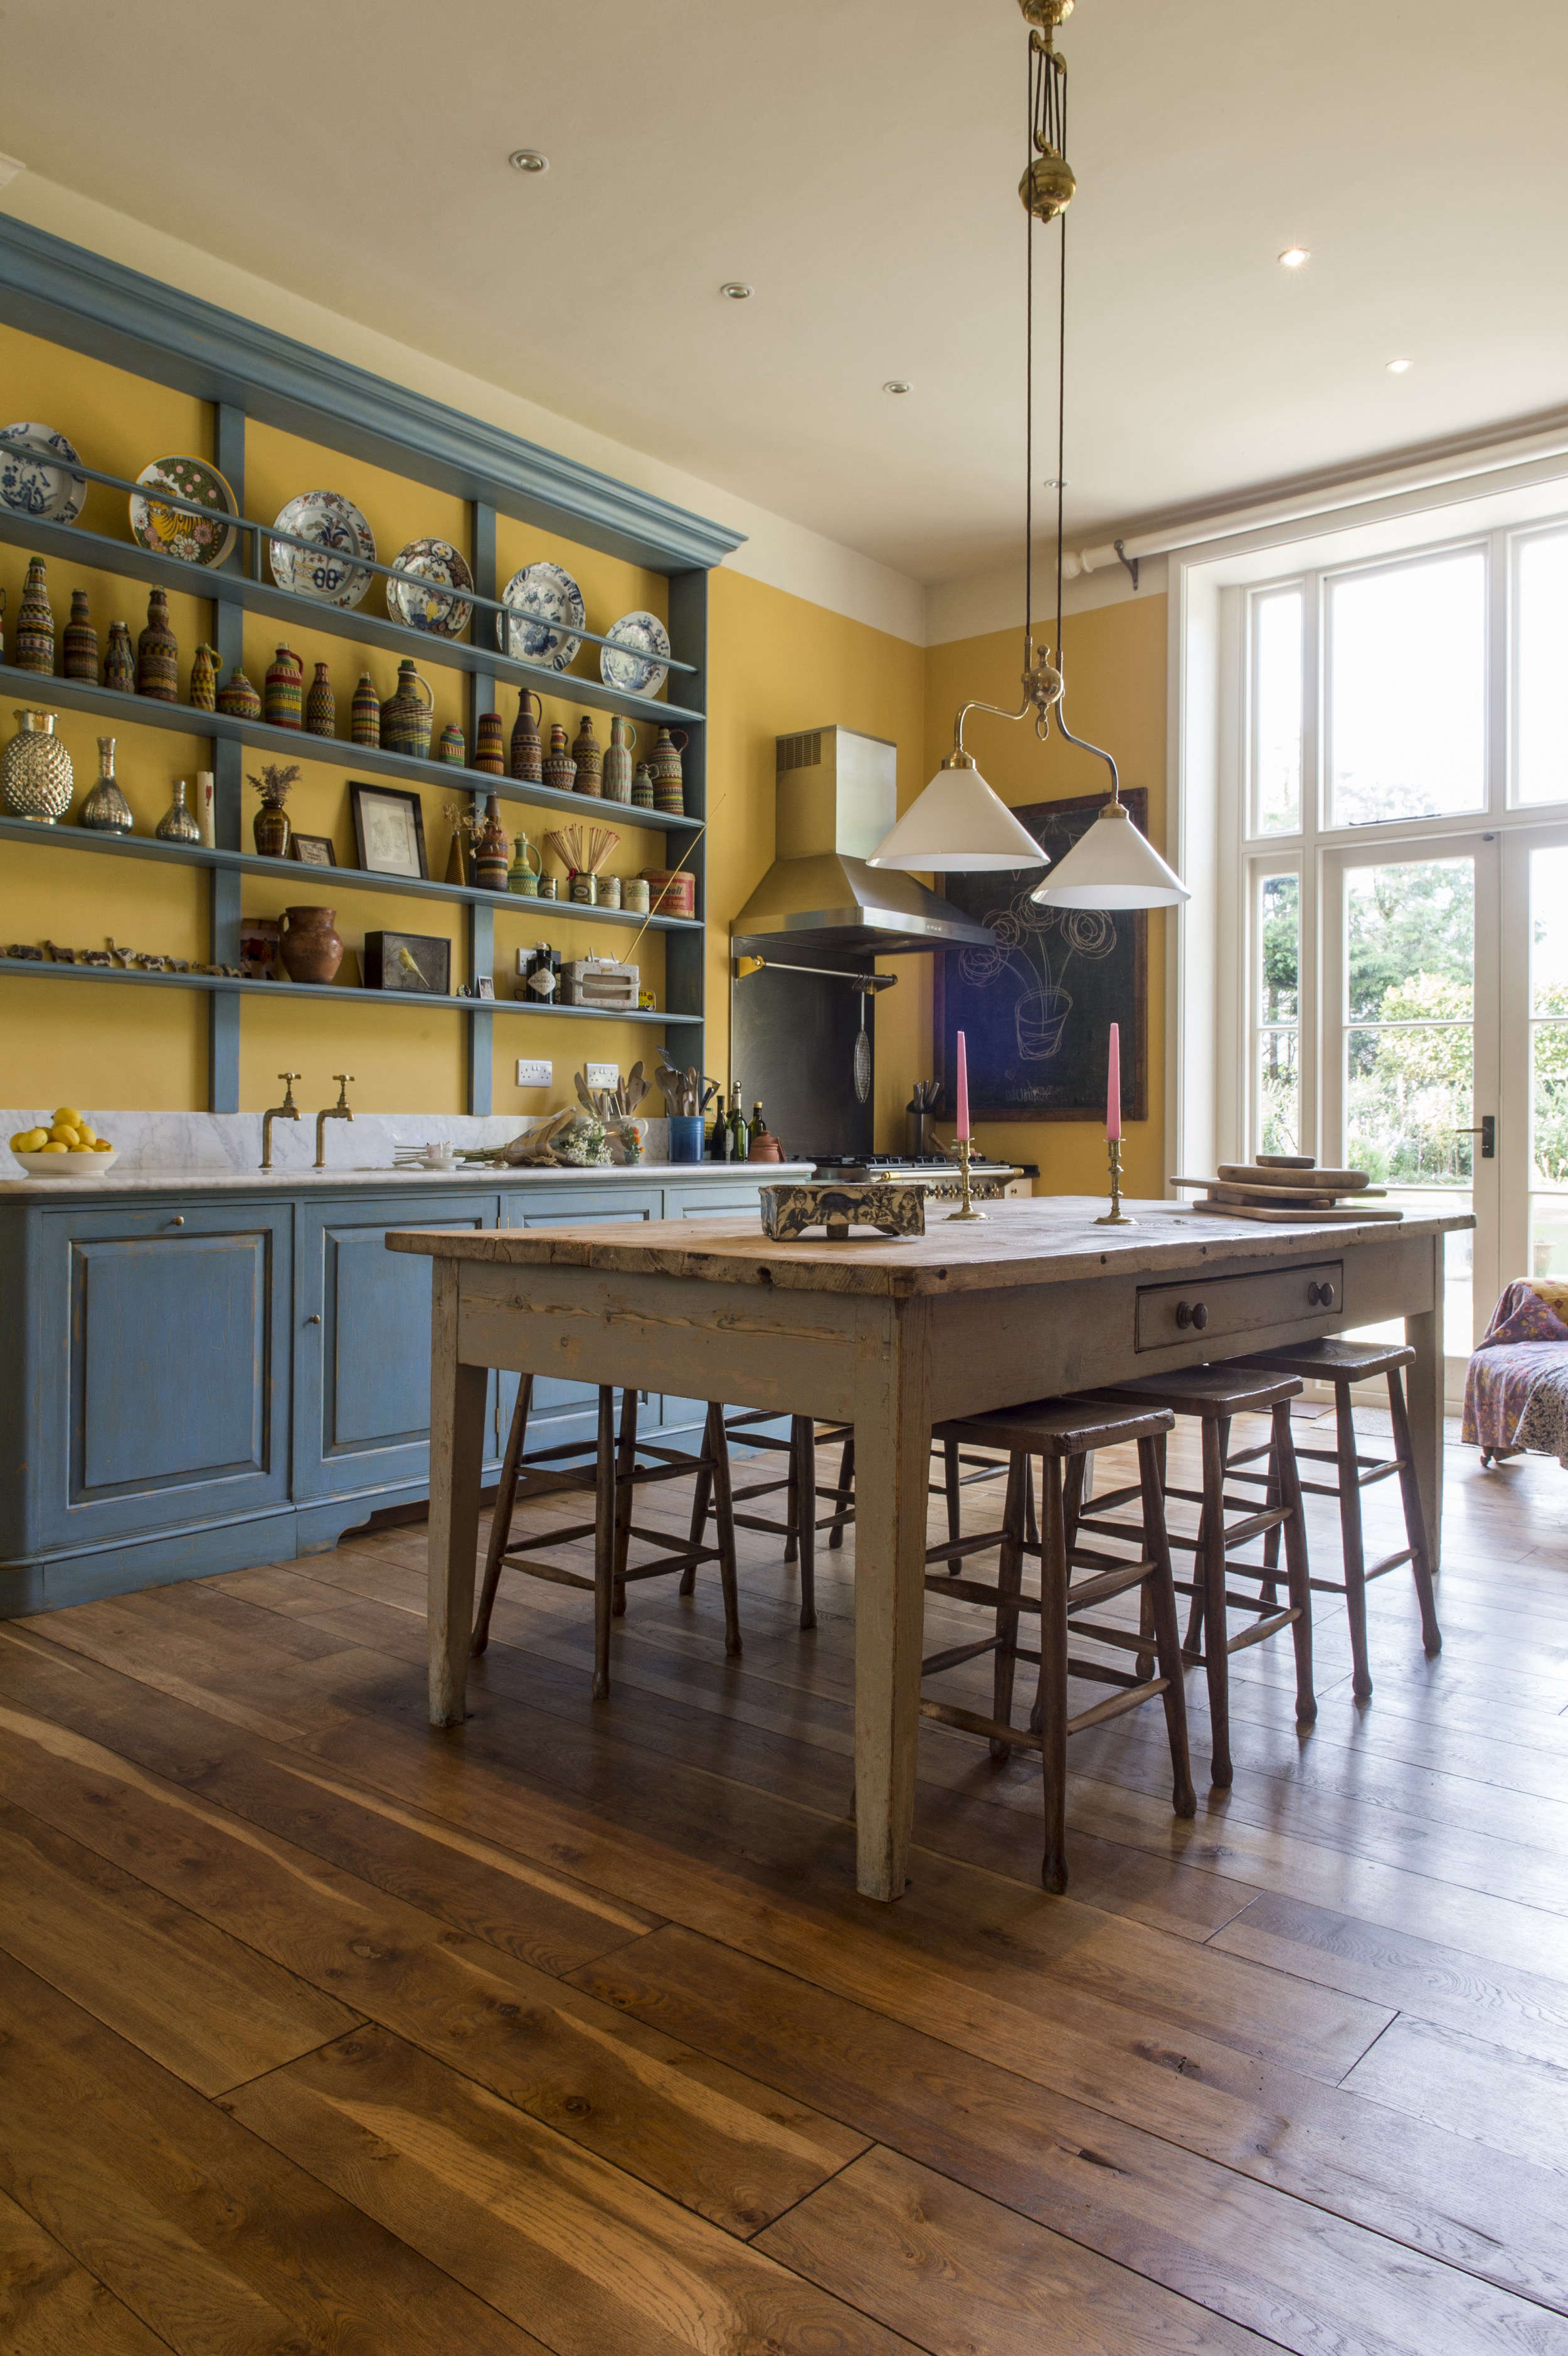 max rolitt uk colorful kitchen wood table and floors_12